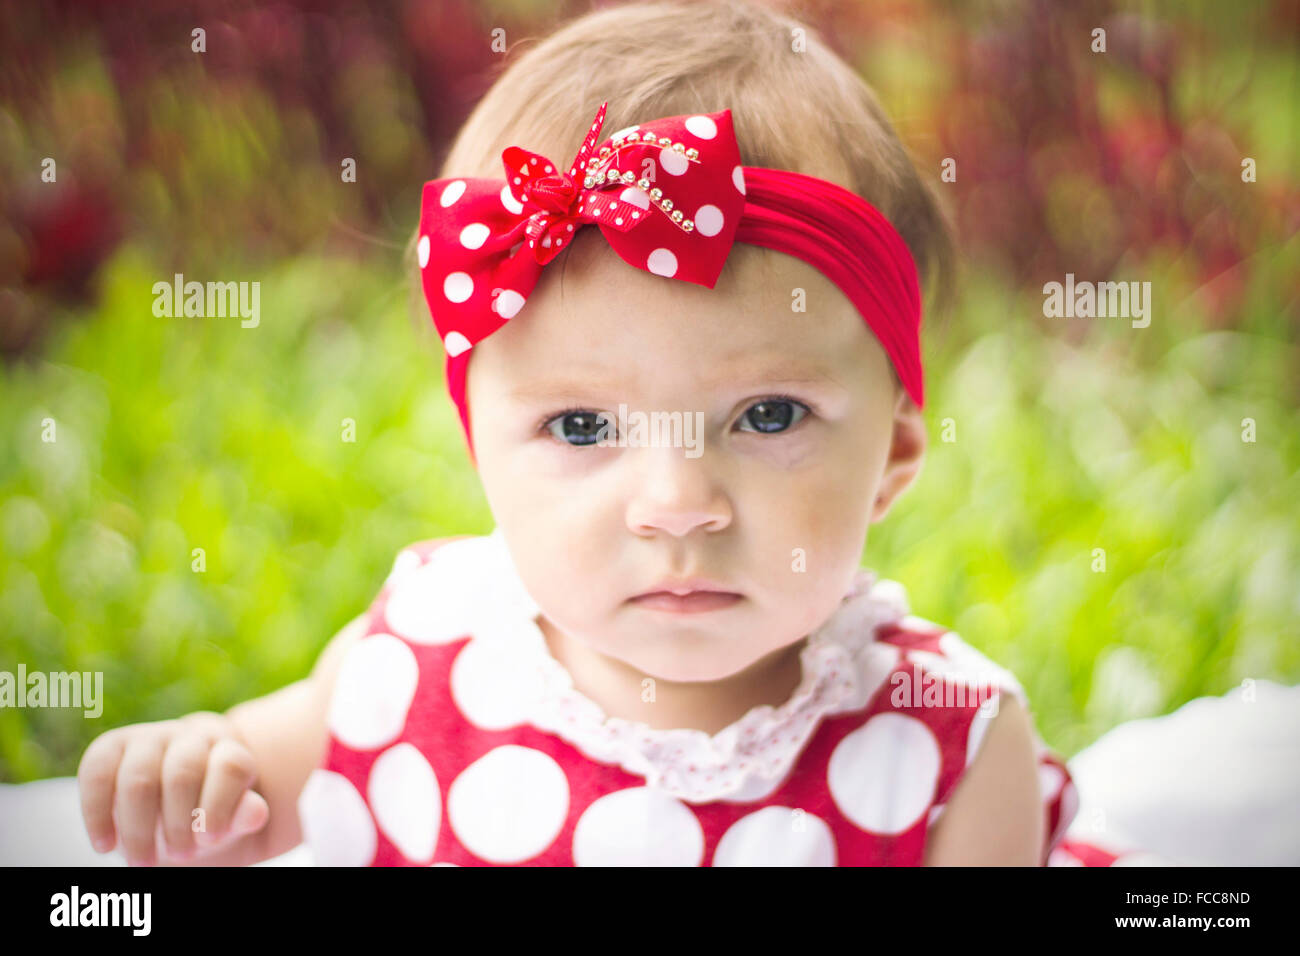 close-up portrait of a pretty baby girl stock photo: 93698009 - alamy